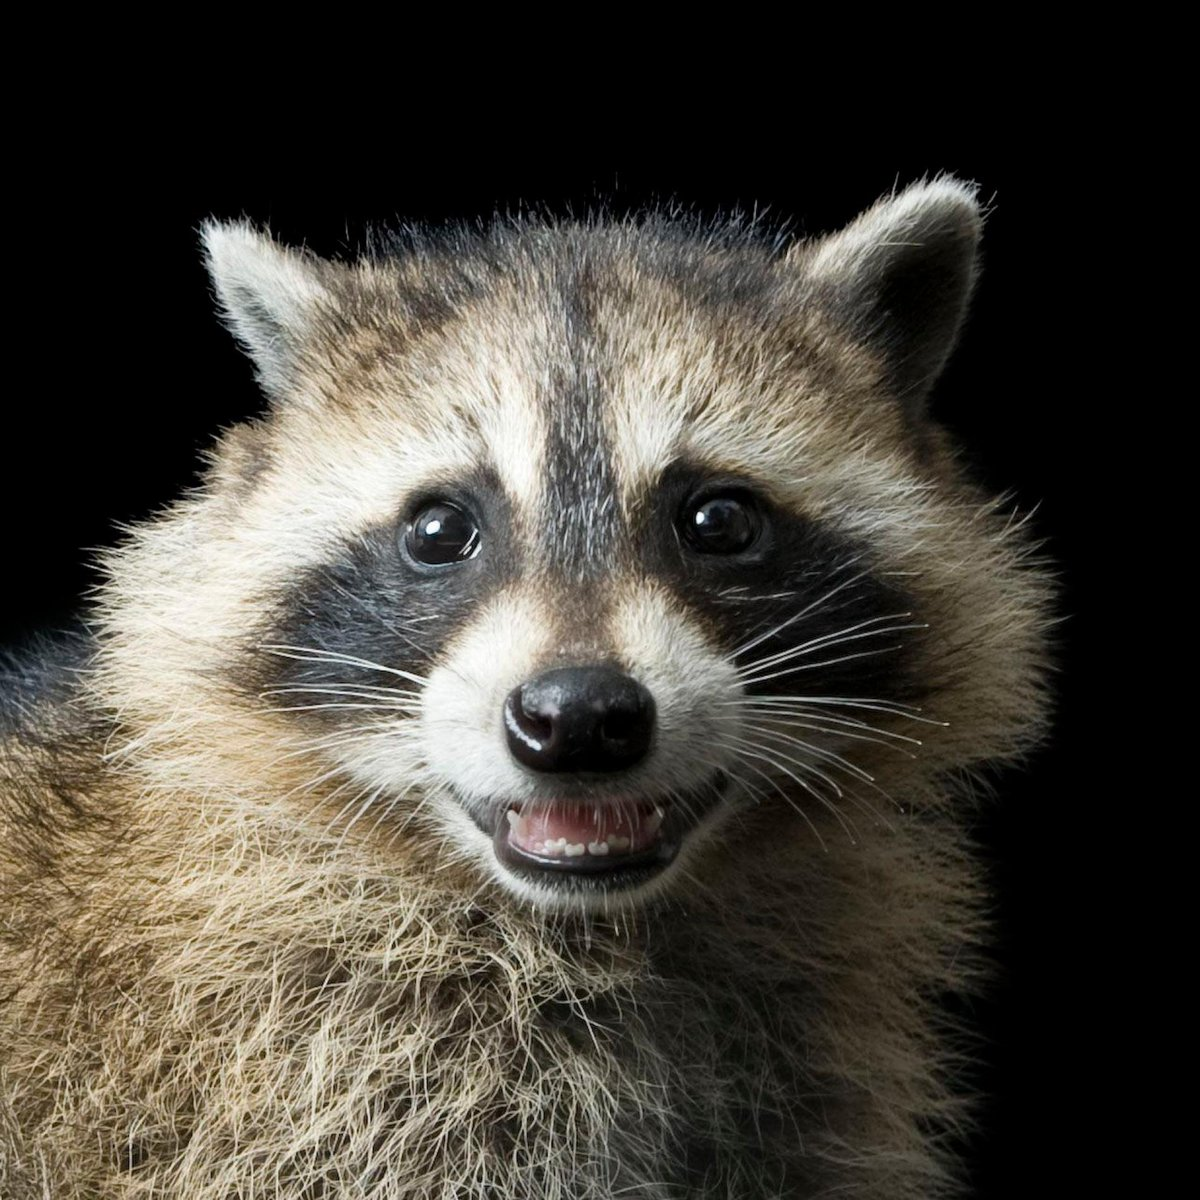 test Twitter Media - Congratulations to @PoetrySociety Member Anna Kisby (@AnnaCom49093409) - winner of Binsted Prize for her poem 'Five Times Raccoon'.  First thing this morning you tell me you can't drive me to California after all and the reason is raccoons...  https://t.co/eC2yJqgSyK https://t.co/30XHAZjUhC